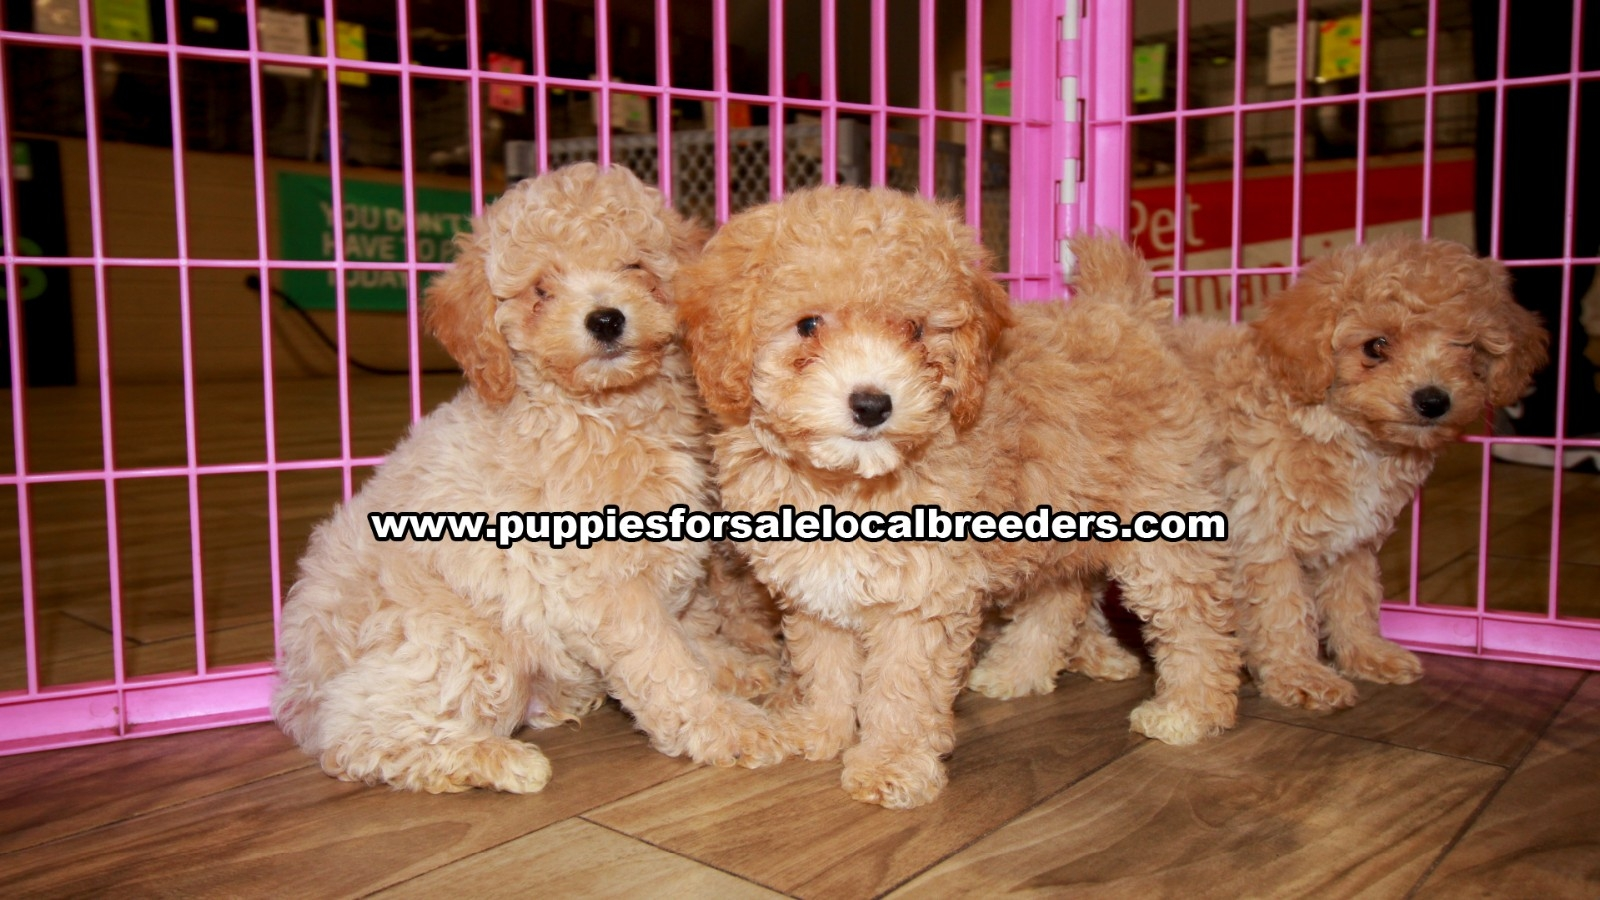 Toy Poodle, Puppies For Sale In Georgia, Local Breeders, Near Atlanta, Ga